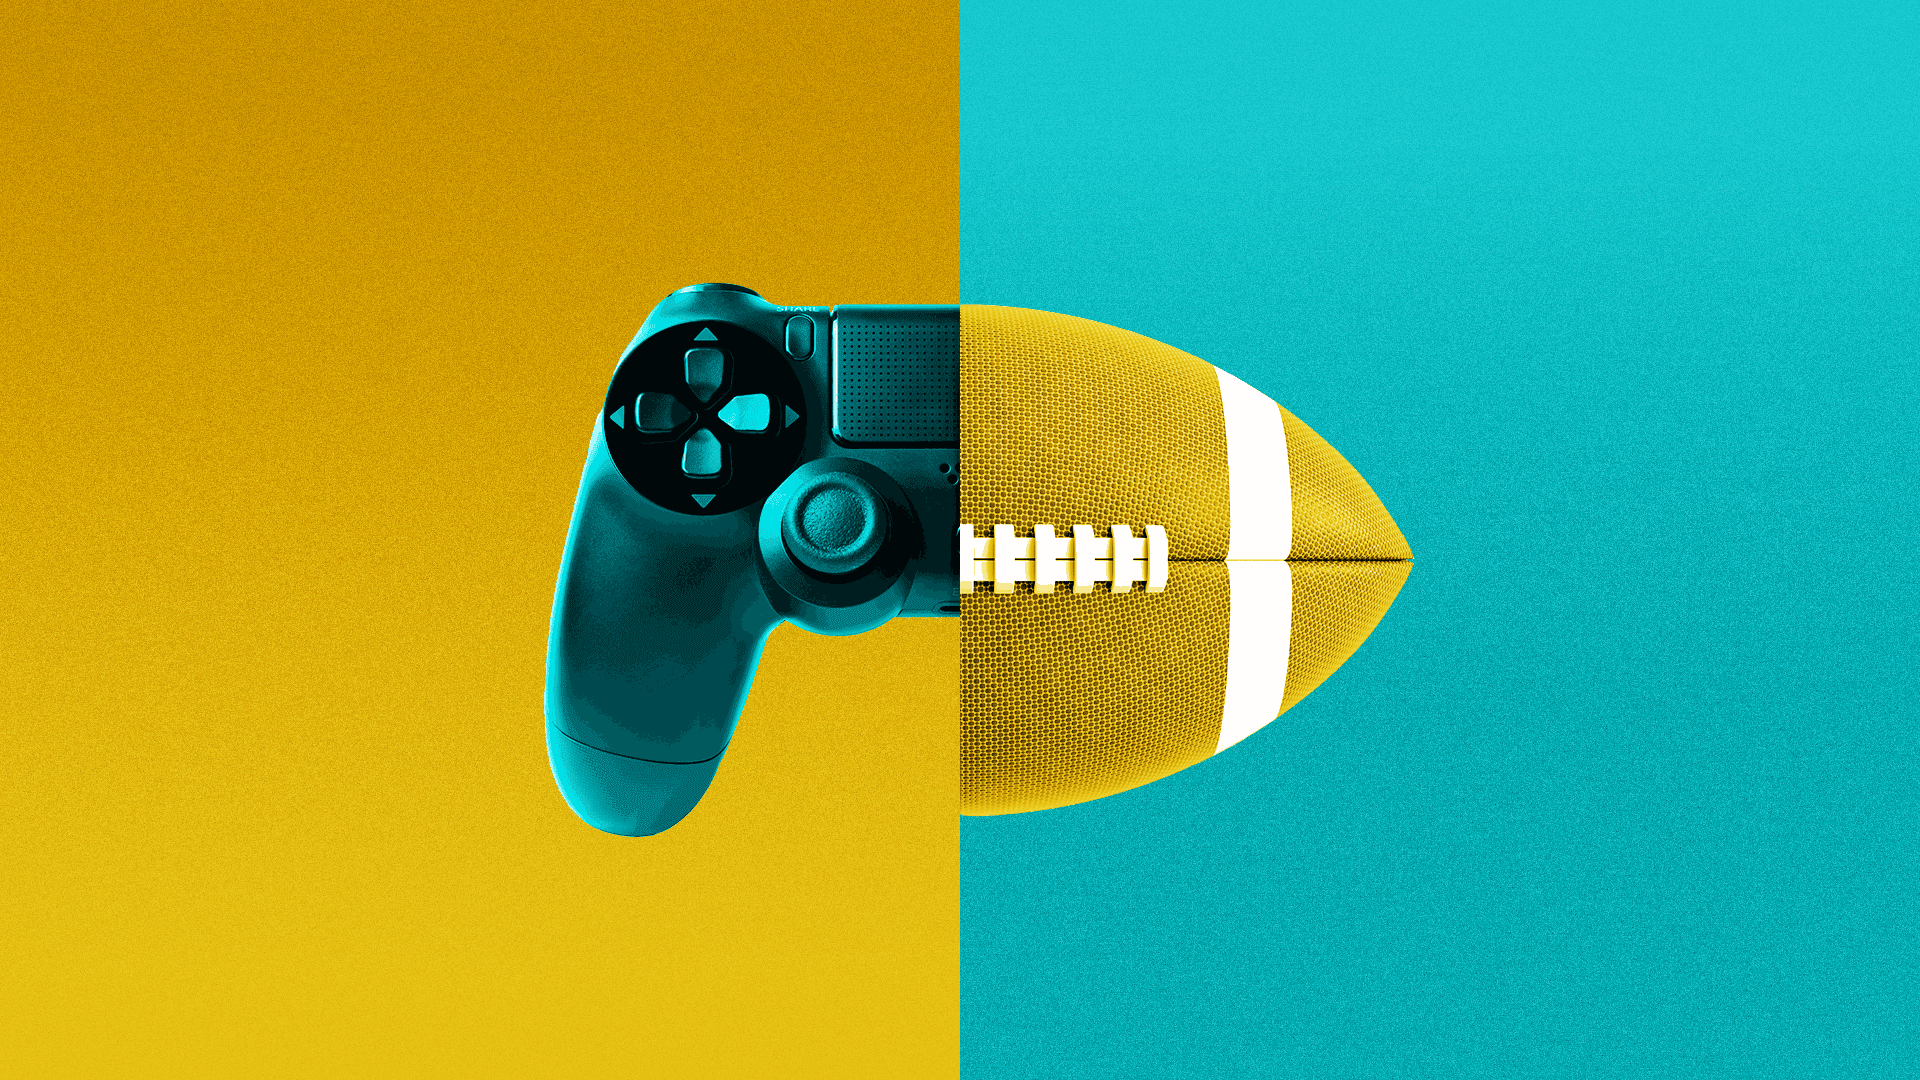 A split image of a gaming console and a football.